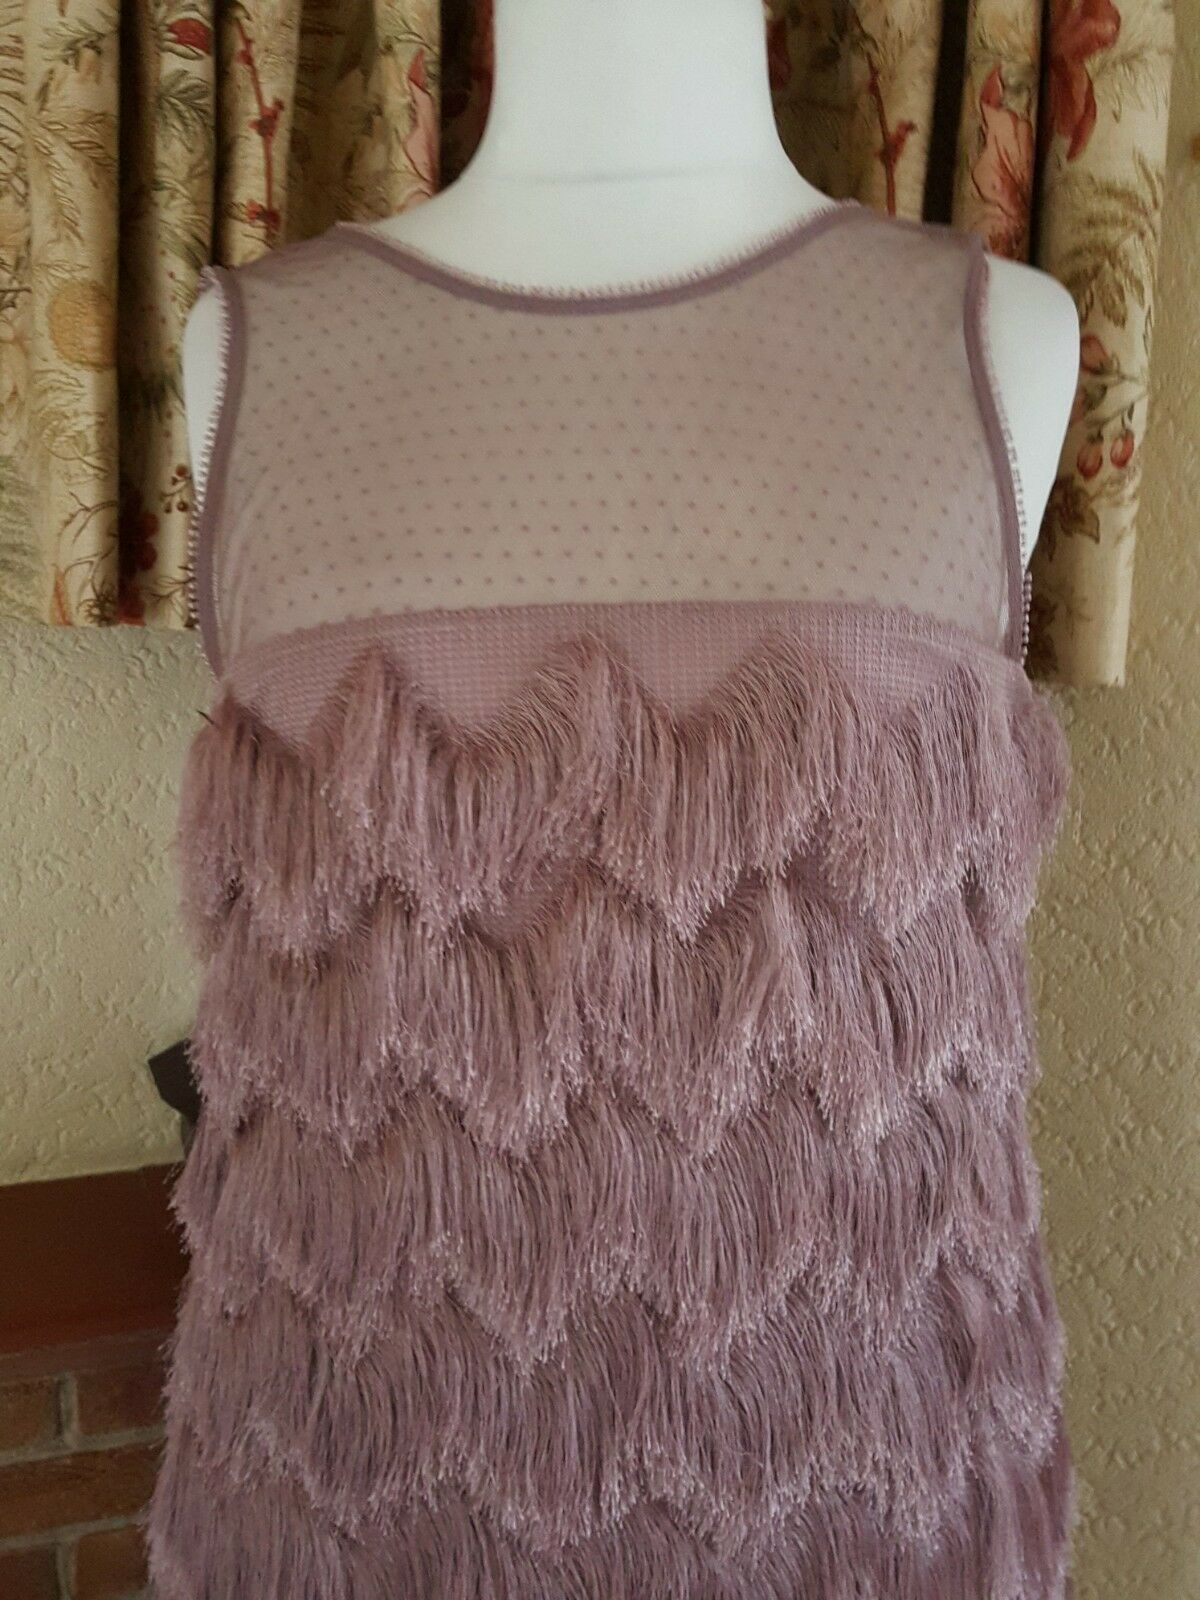 DUSKY PINK TASSEL MESH MESH MESH PARTY DRESS FROM RIVER ISLAND  SIZE 18 16  - SUMMER 78a06a